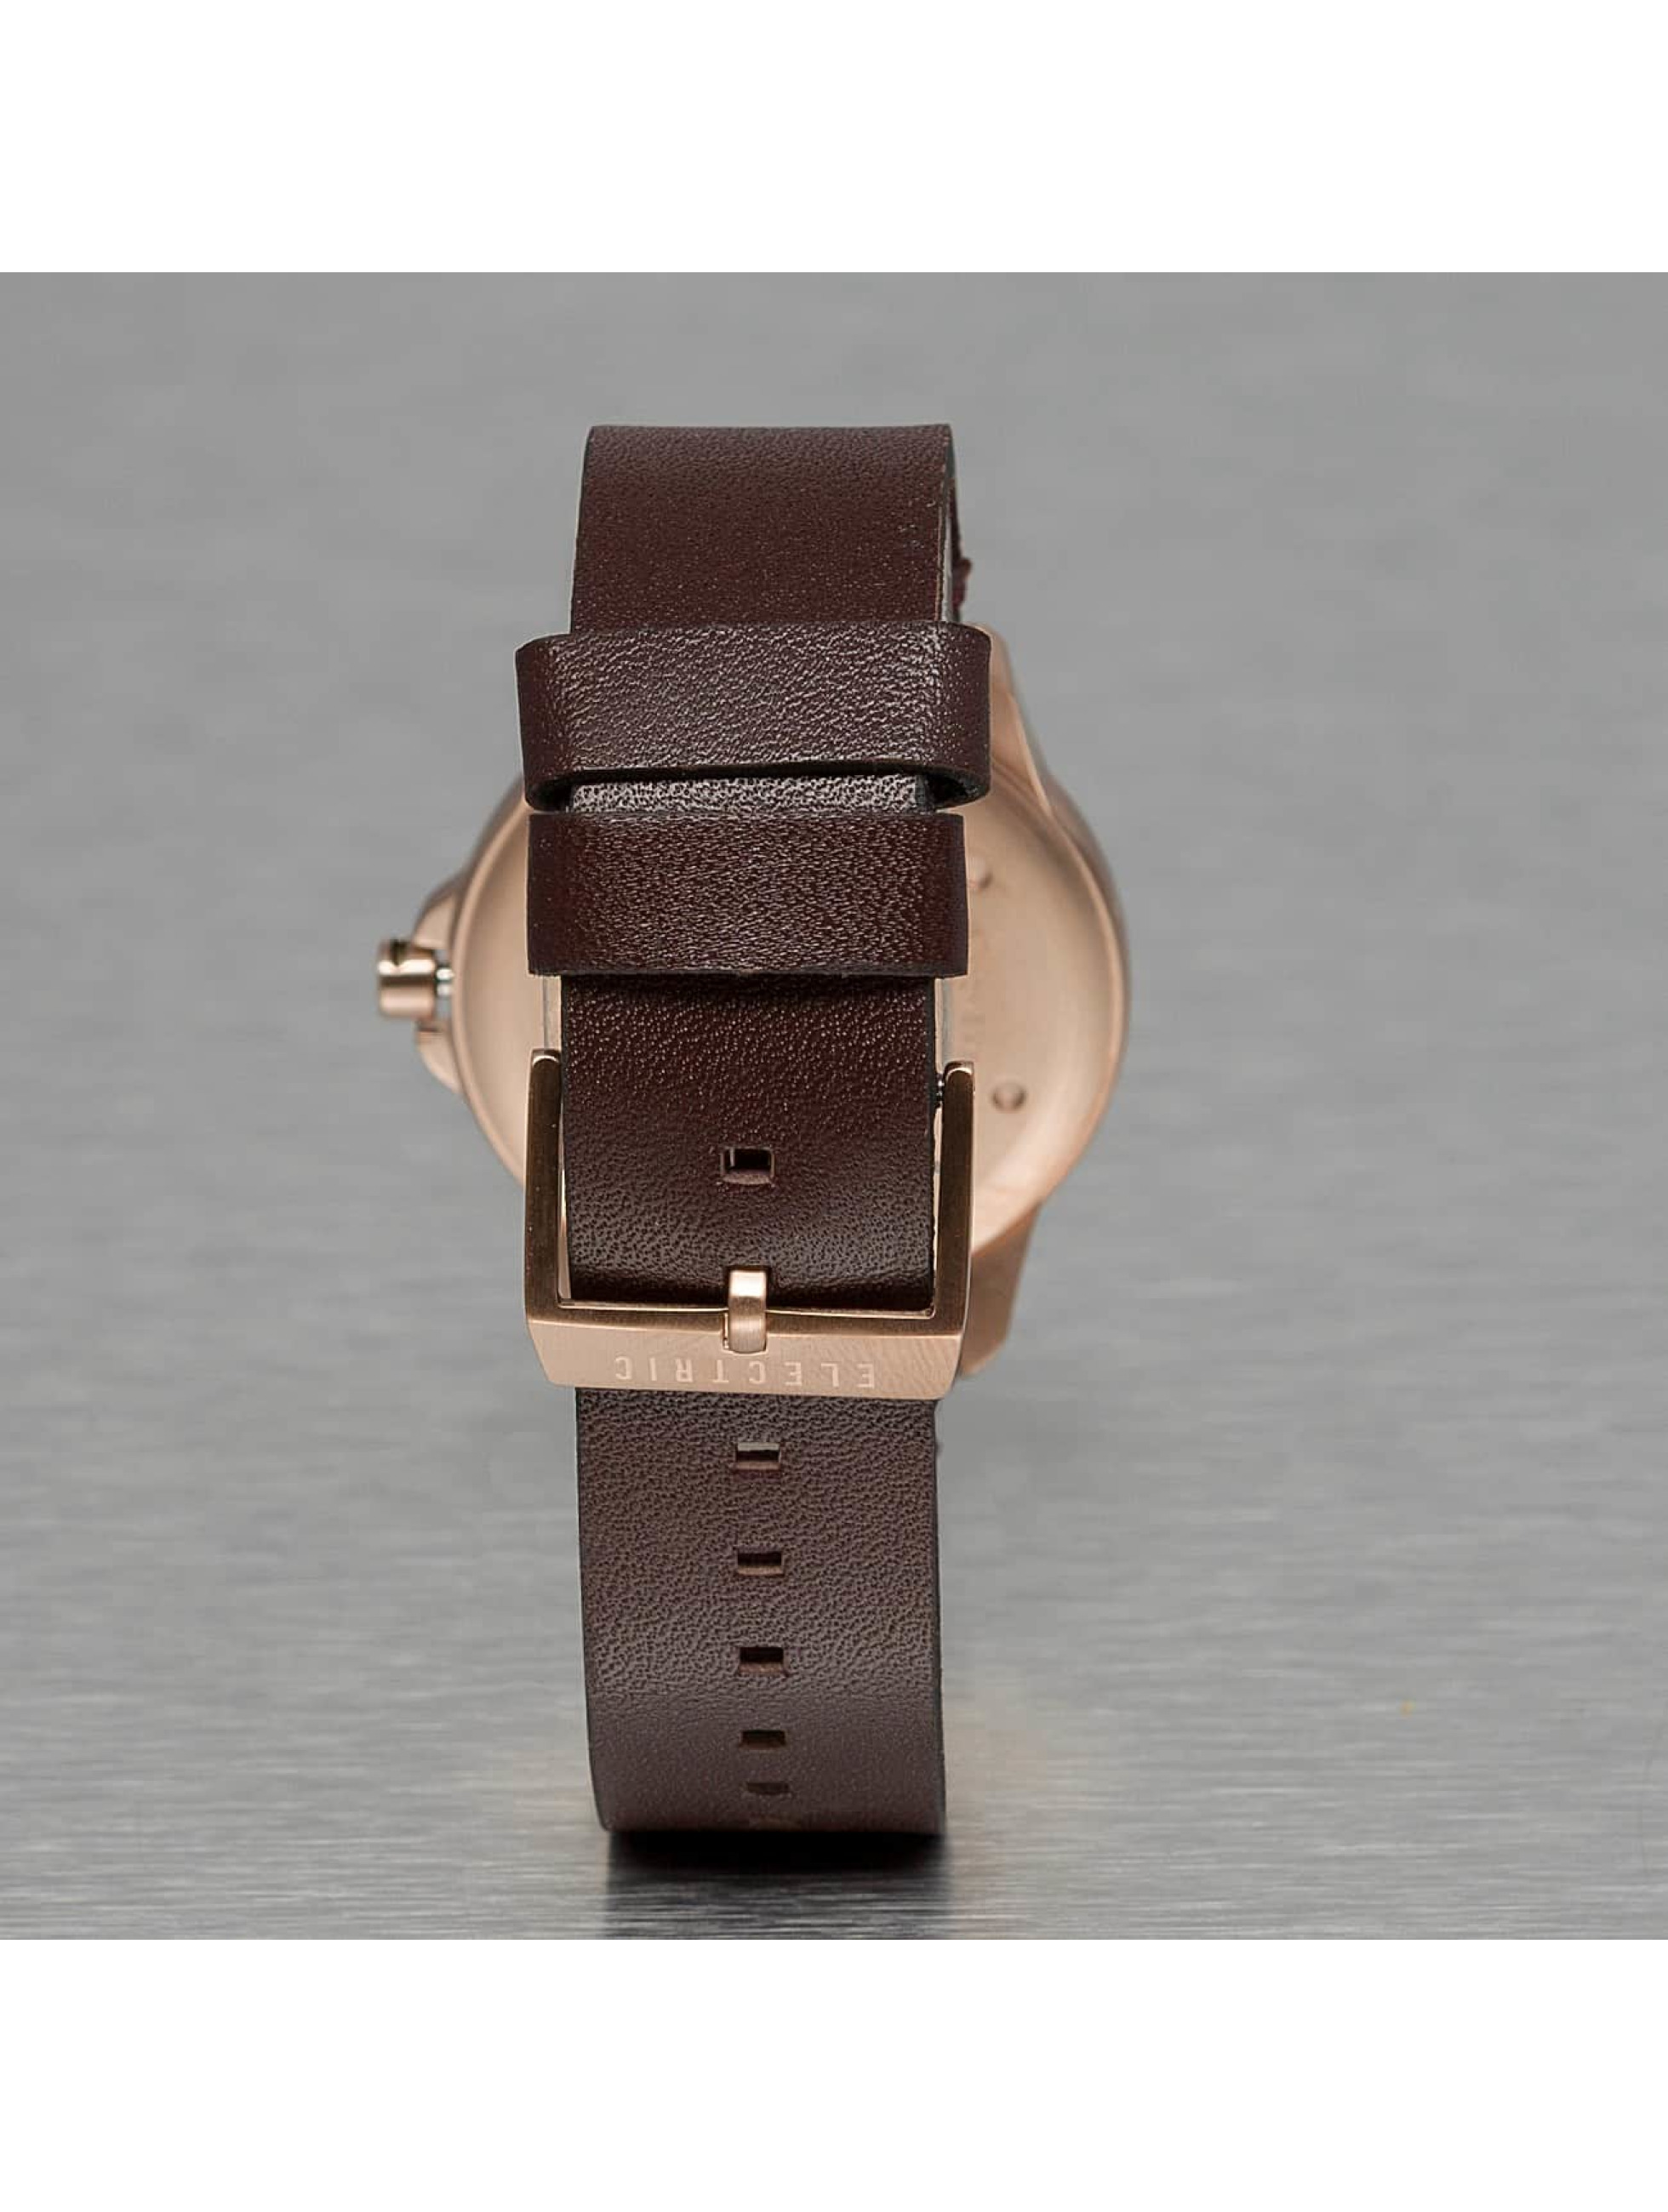 Electric Watch CARROWAY brown